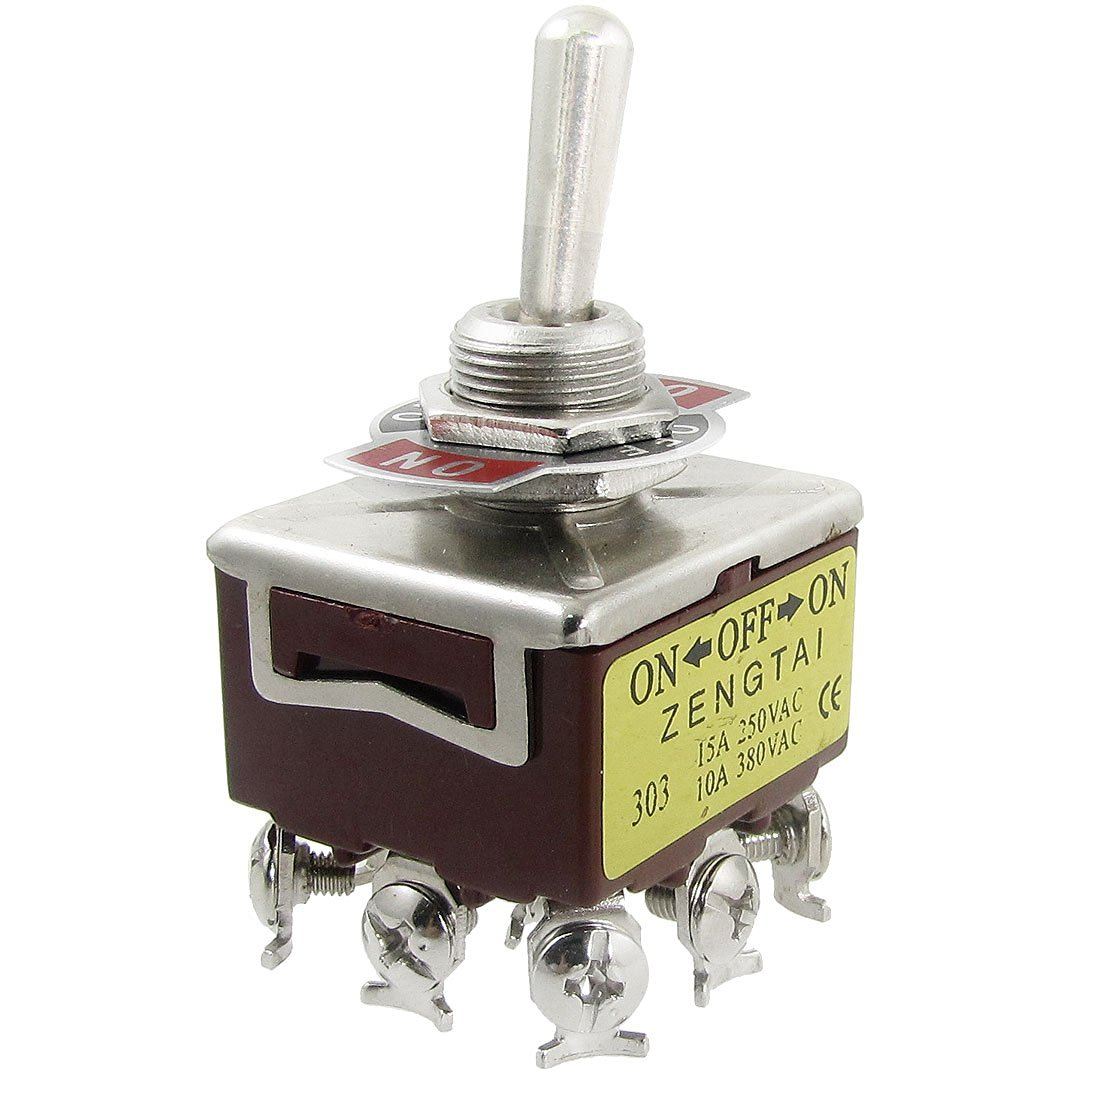 uxcell AC 250V 15A 380V 10A ON/OFF/ON 3 Position 3PDT 9 Screw Terminals Toggle Switch